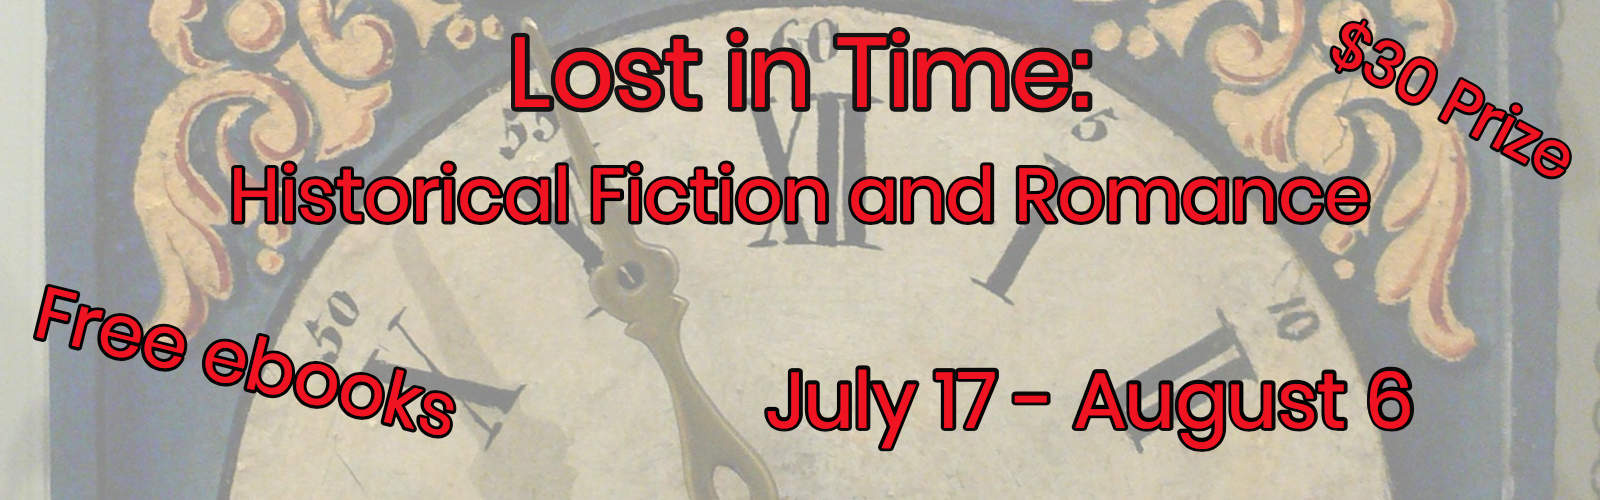 Lost in Time: Historical Fiction and Romance